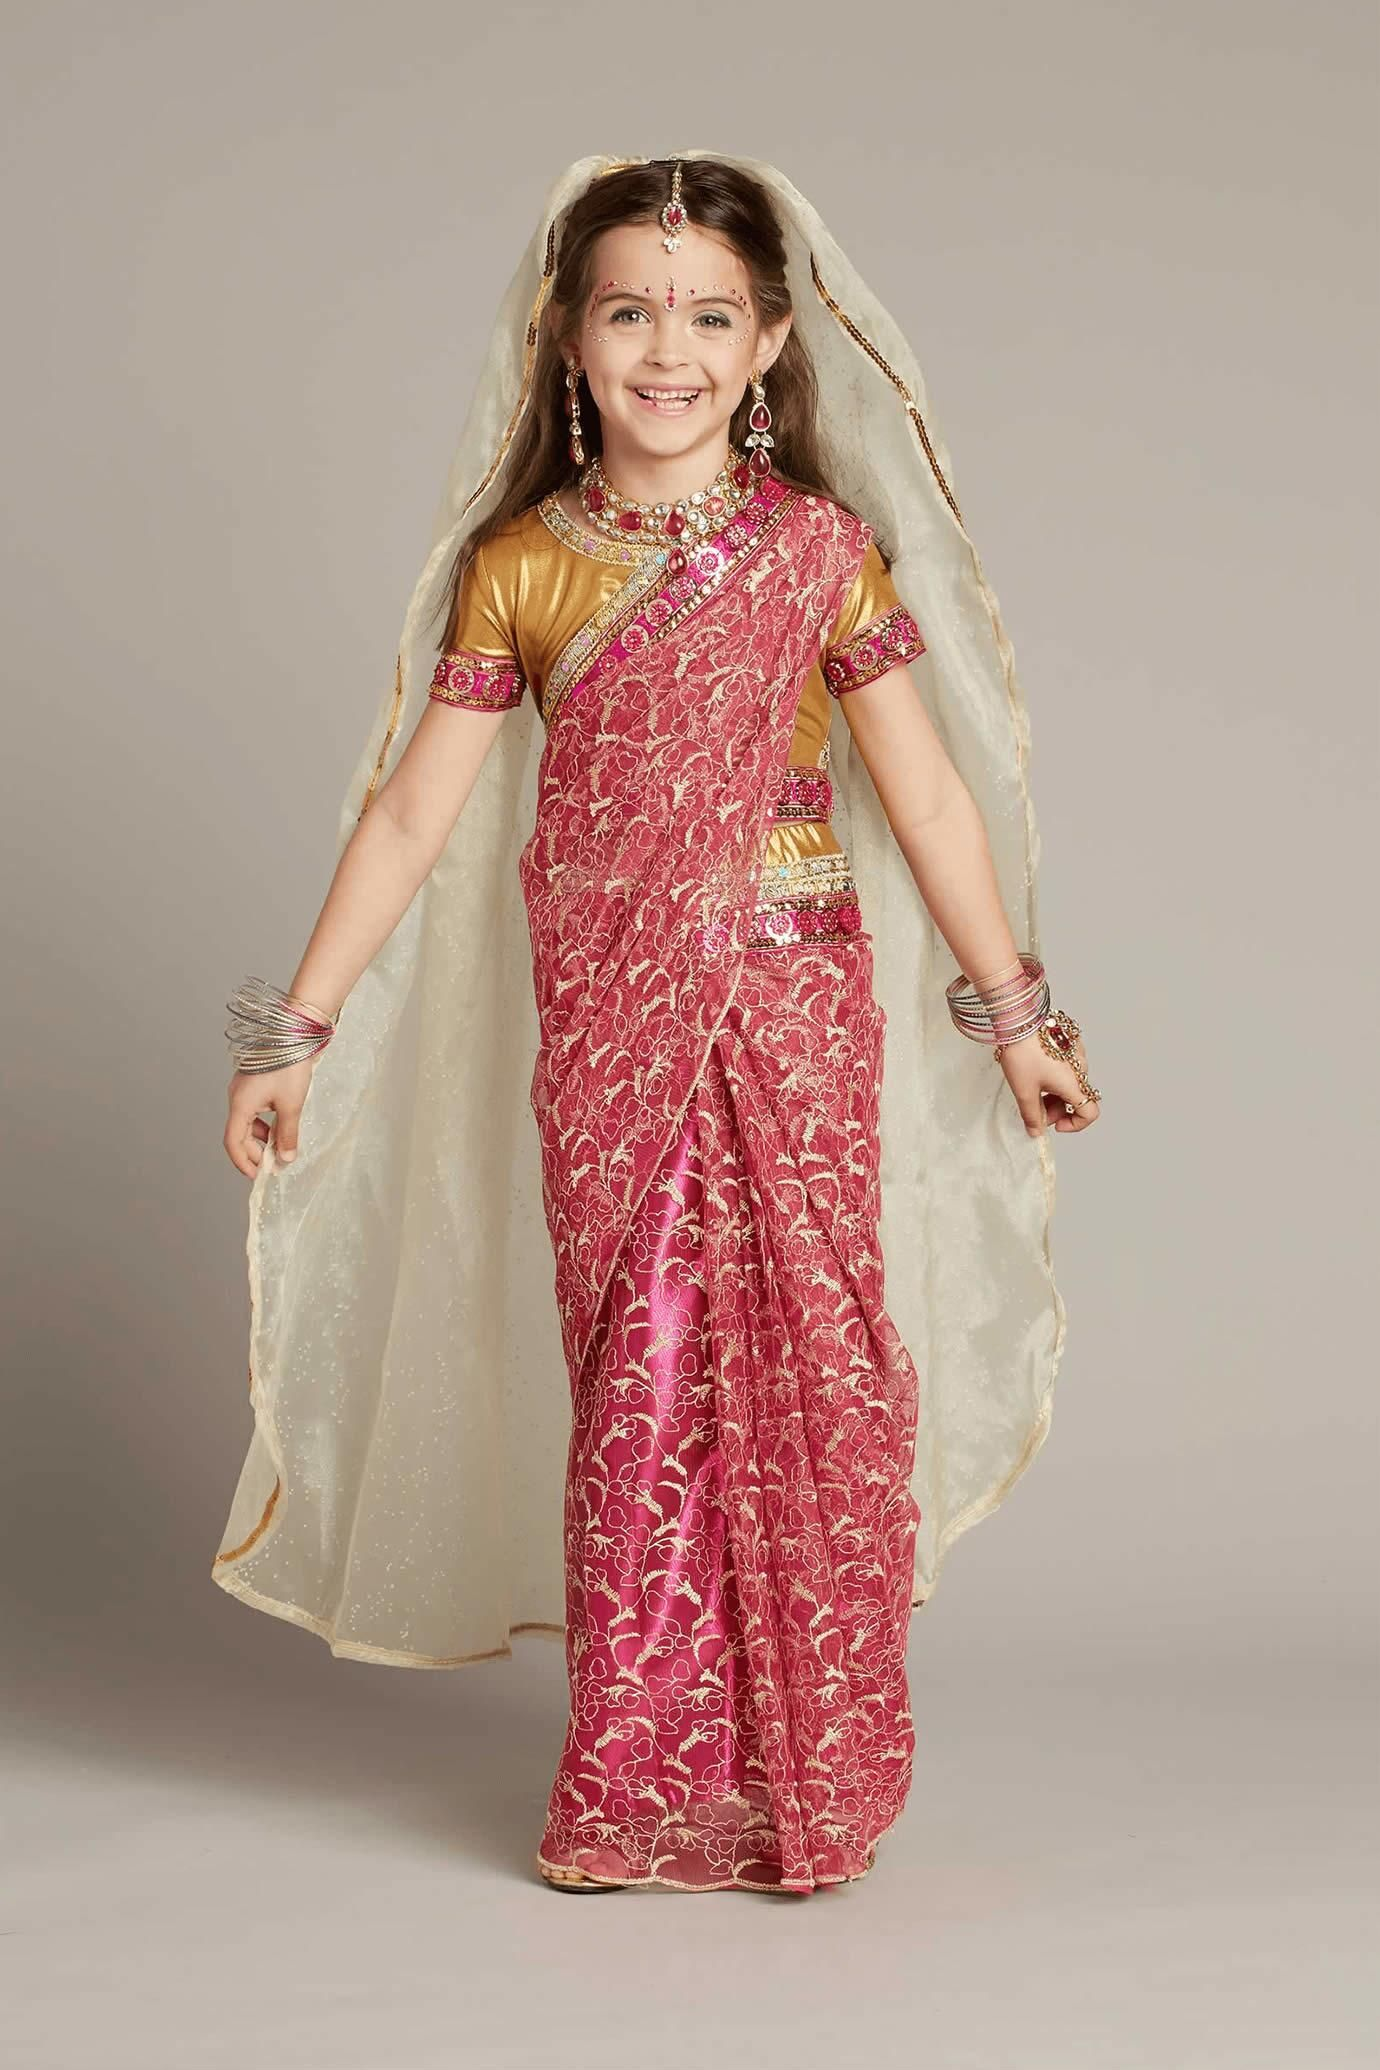 b4c018f3cb05a Indian Maharani Princess Costume for Girls in 2019 | Halloween ...